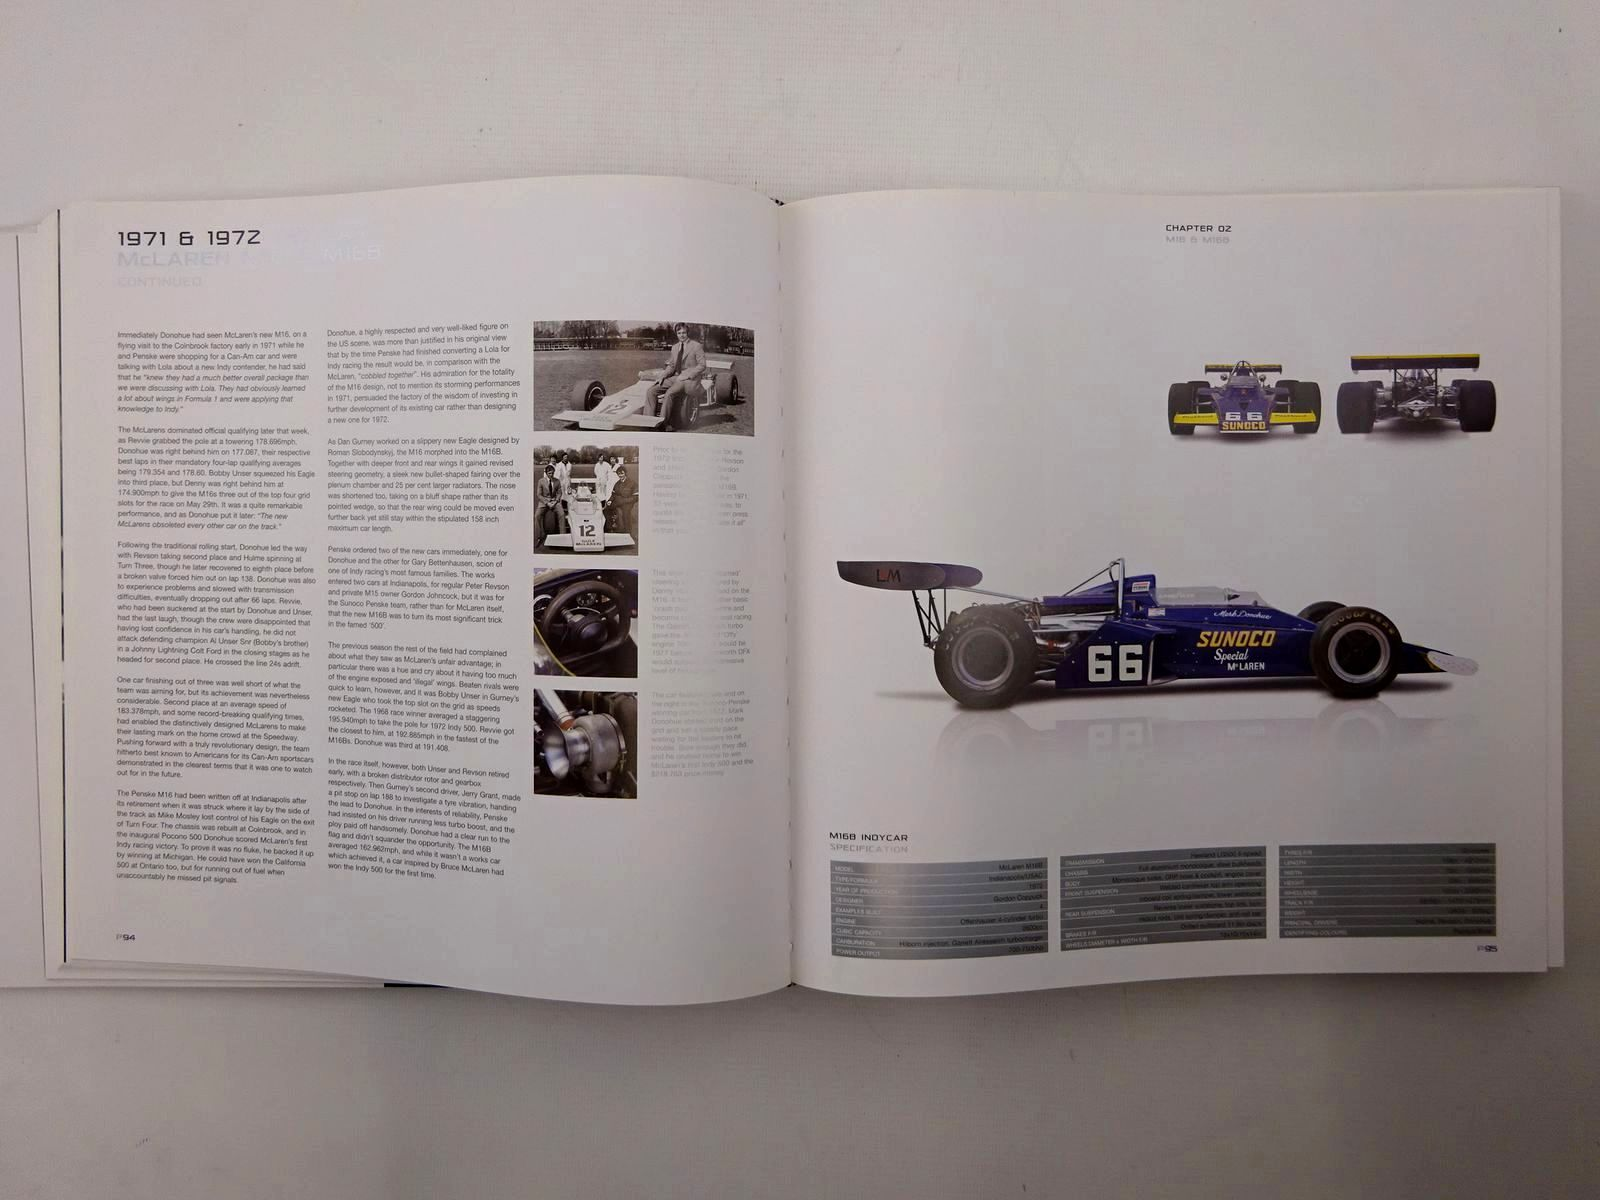 Photo of MCLAREN - THE CARS 1964-2008 written by Taylor, William published by Coterie Press Limited (STOCK CODE: 1610561)  for sale by Stella & Rose's Books